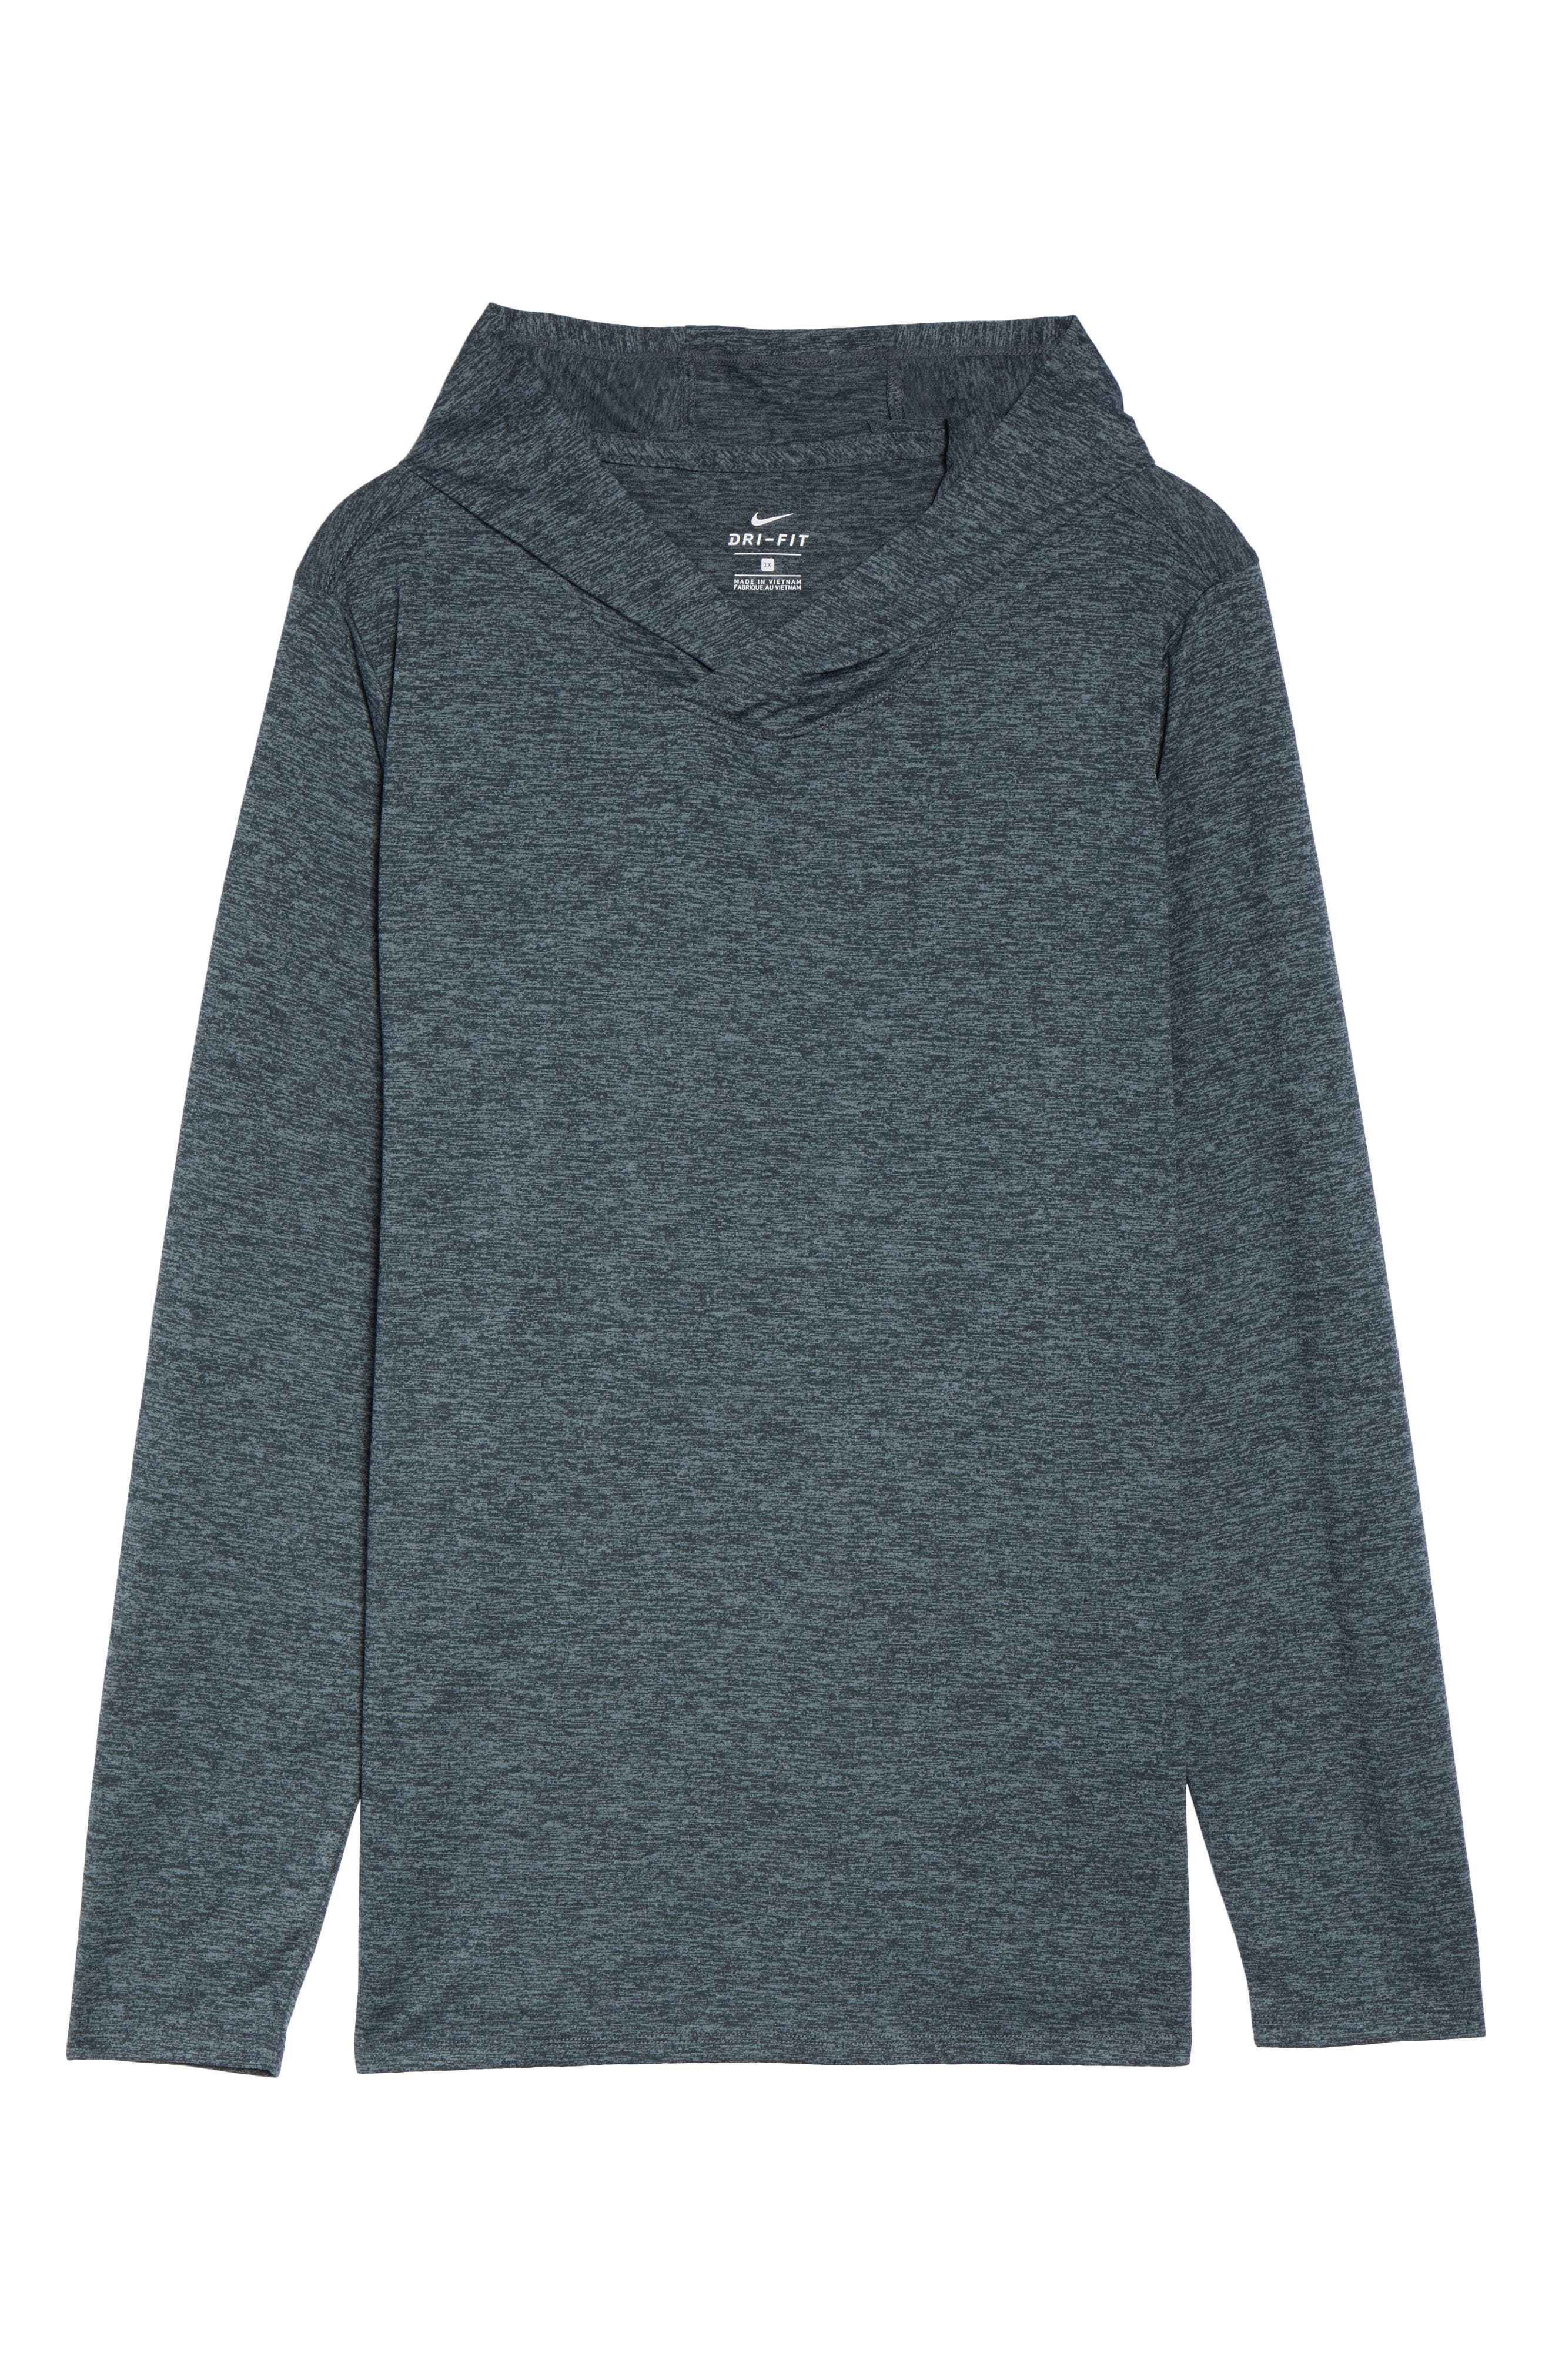 Dry Training Hoodie,                             Alternate thumbnail 7, color,                             Black/ Cool Grey/ White